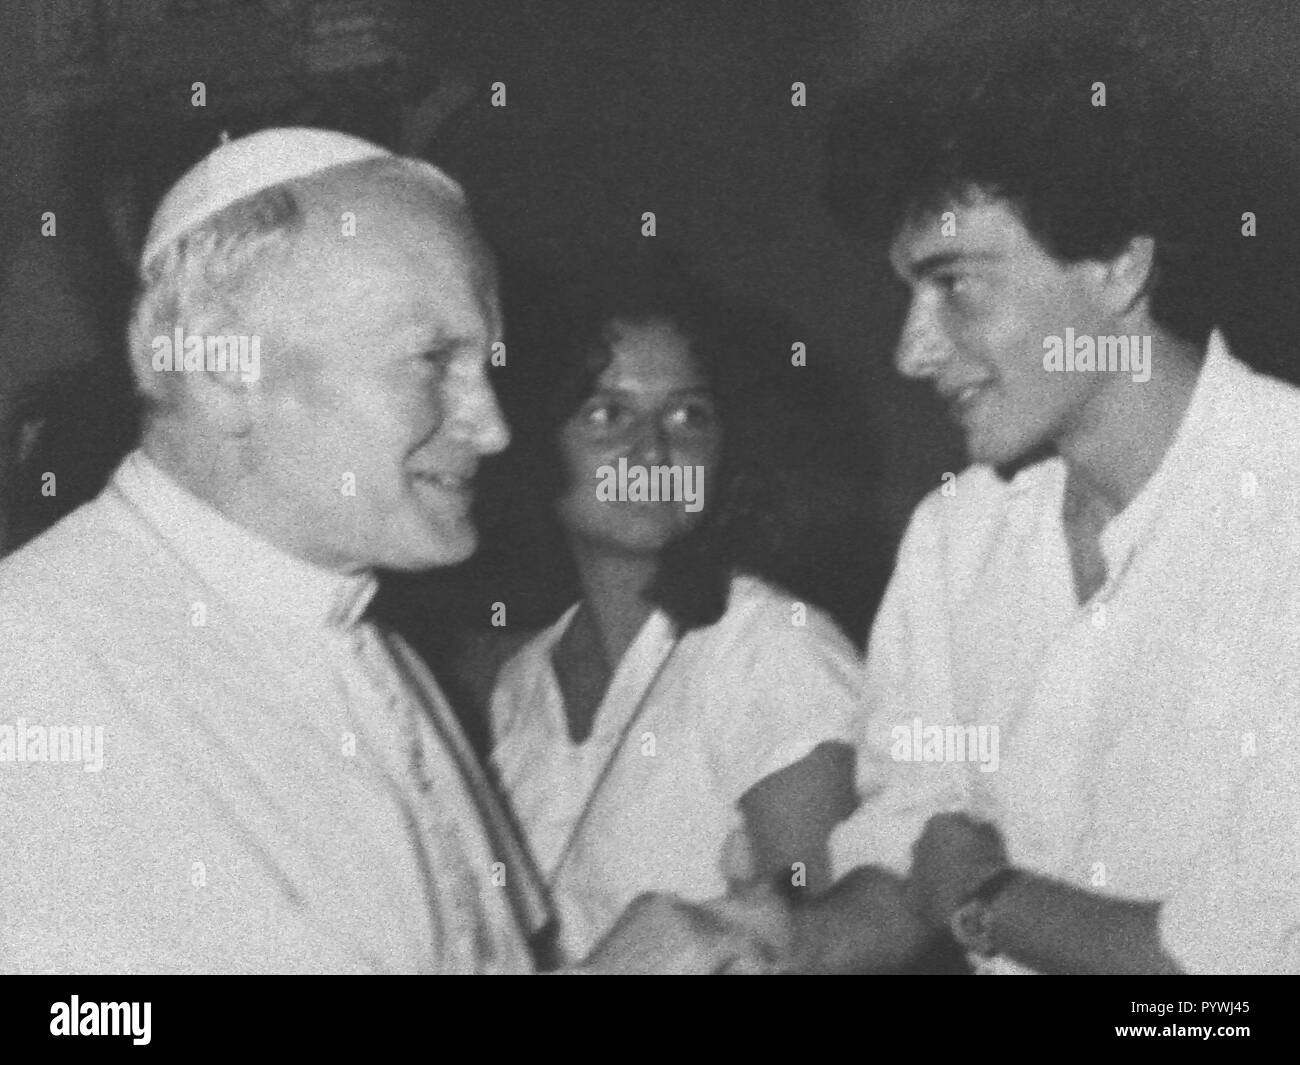 Rome, Pietro Orlandi, brother of Emanuela, the girl kidnapped 28 years ago and never found again. In the picture Pietro Orlandi with Pope John Paul II *** PRICE TO BE AGREED *** (FT/Rome/IPA, Rome - 2013-10-24) ps the photo can be used respecting the context in which it was taken, and without the defamatory intent of the decorum of the persons represented (FT/Roma/IPA, PHOTO ARCHIVE - 2018-10-31) p.s. la foto e' utilizzabile nel rispetto del contesto in cui e' stata scattata, e senza intento diffamatorio del decoro delle persone rappresentate - Stock Image